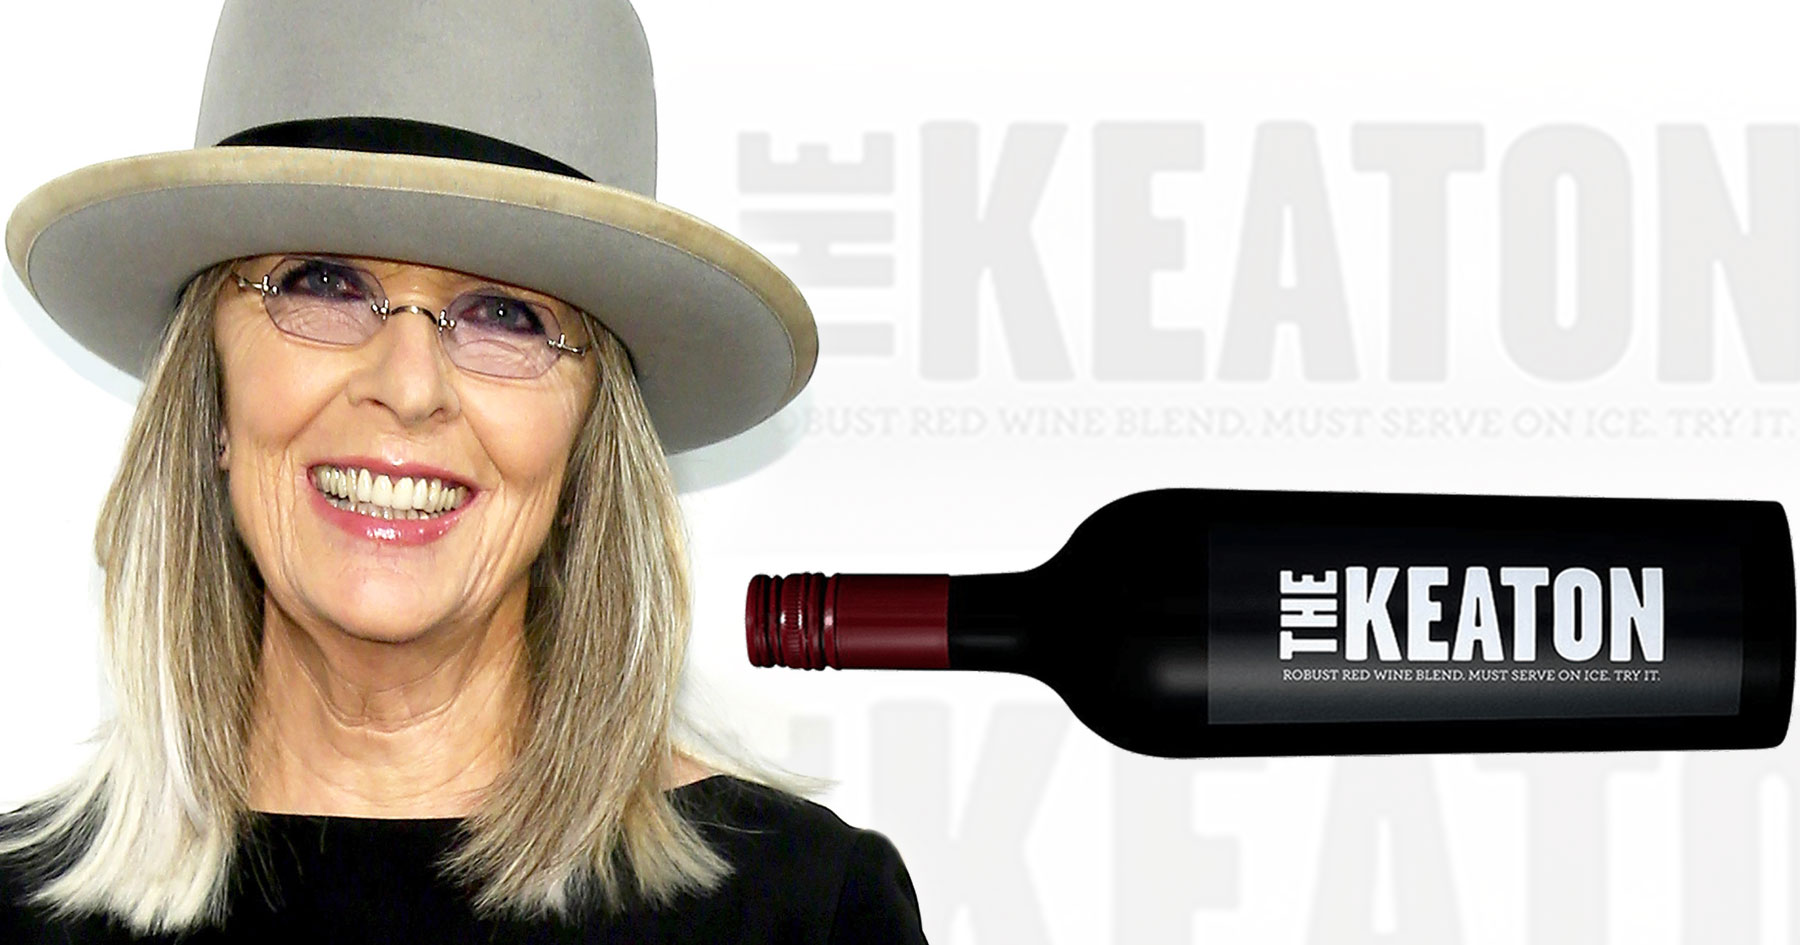 All About Diane Keaton's Celebrity-Brand Wine |